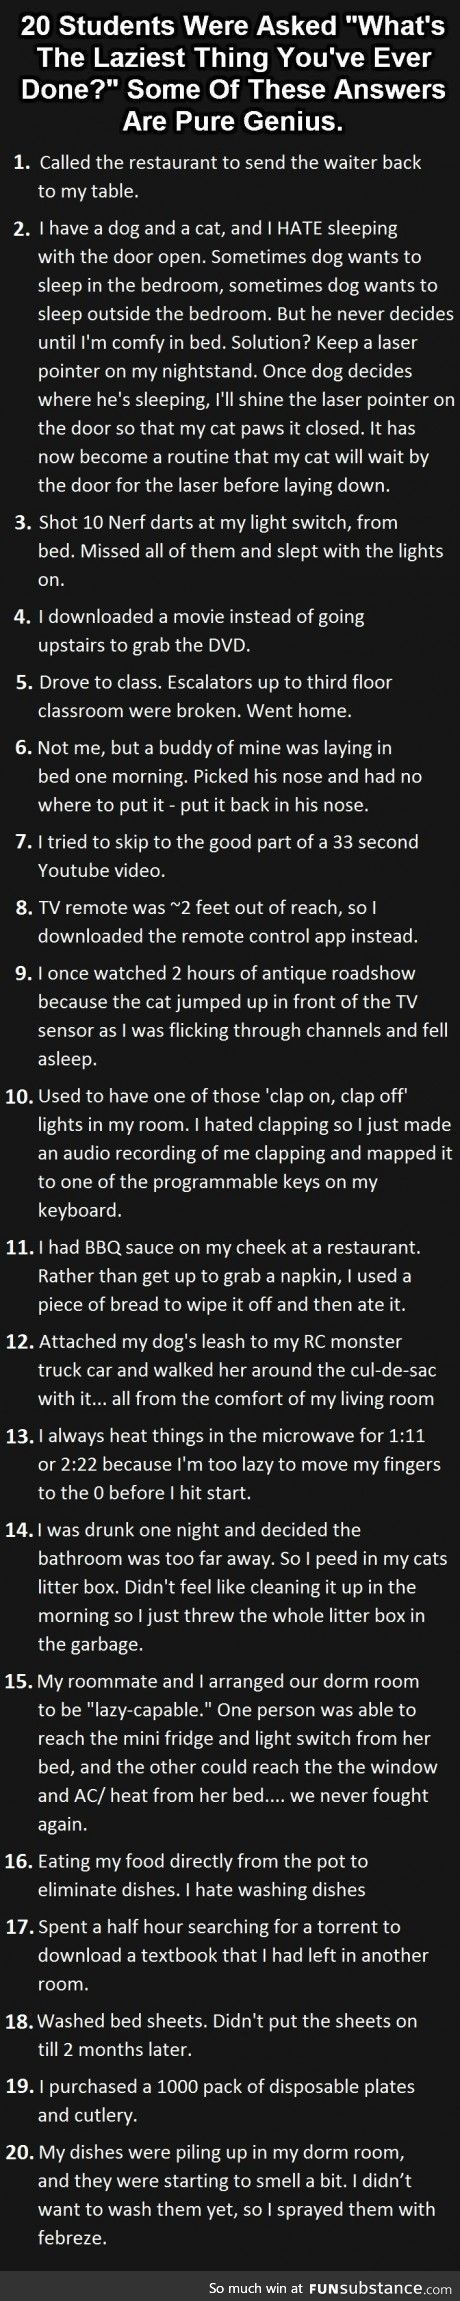 Laziest Thing You've Ever Done? Hahaha definitely worth reading. Some of these are hilarious!